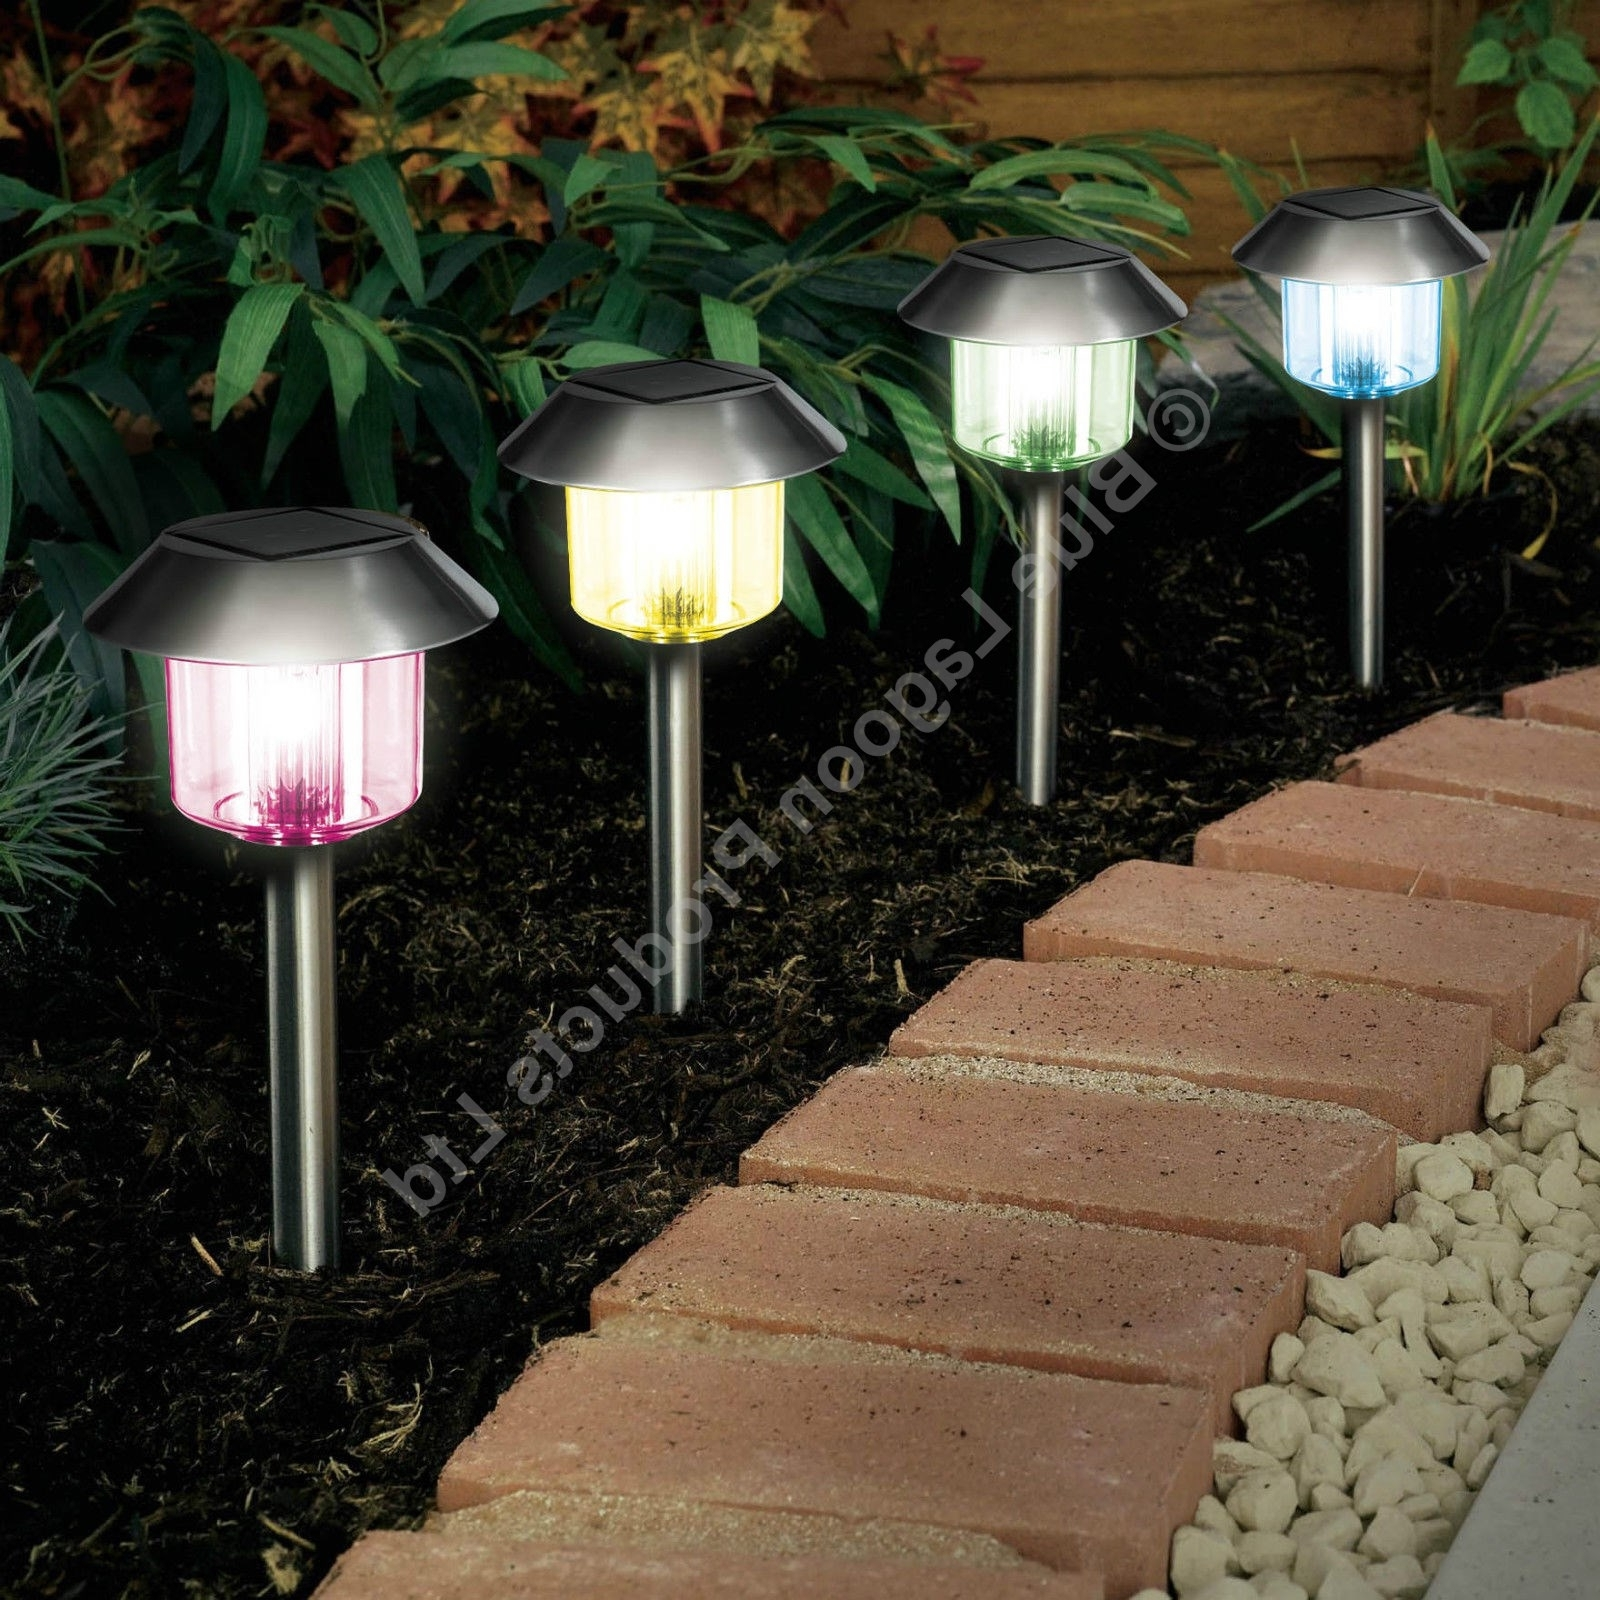 Amazing Of Outdoor Lawn Lights Yard Light Solar Shrubs Landscaping With Current Outdoor Lawn Lanterns (Gallery 8 of 20)